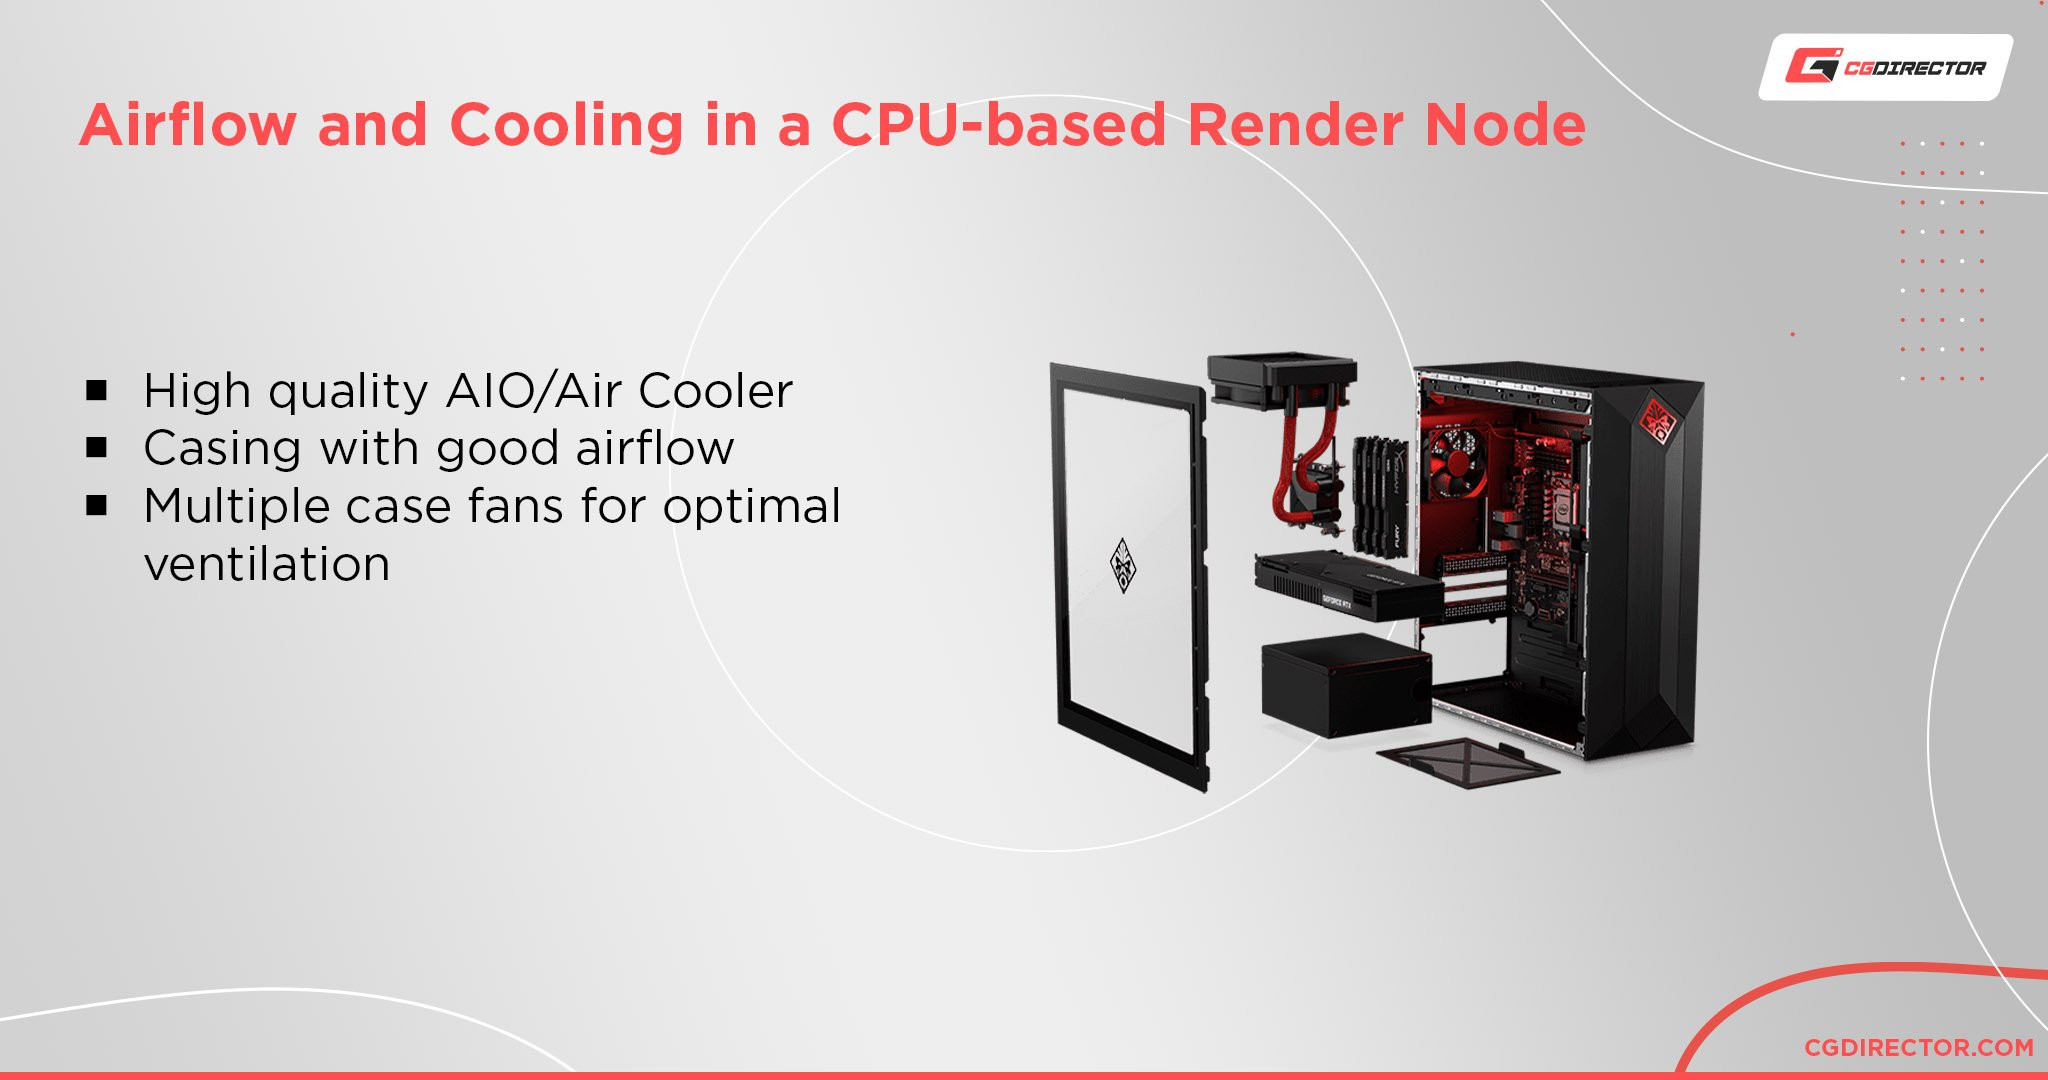 Airflow and Cooling in a CPU-based Render Node